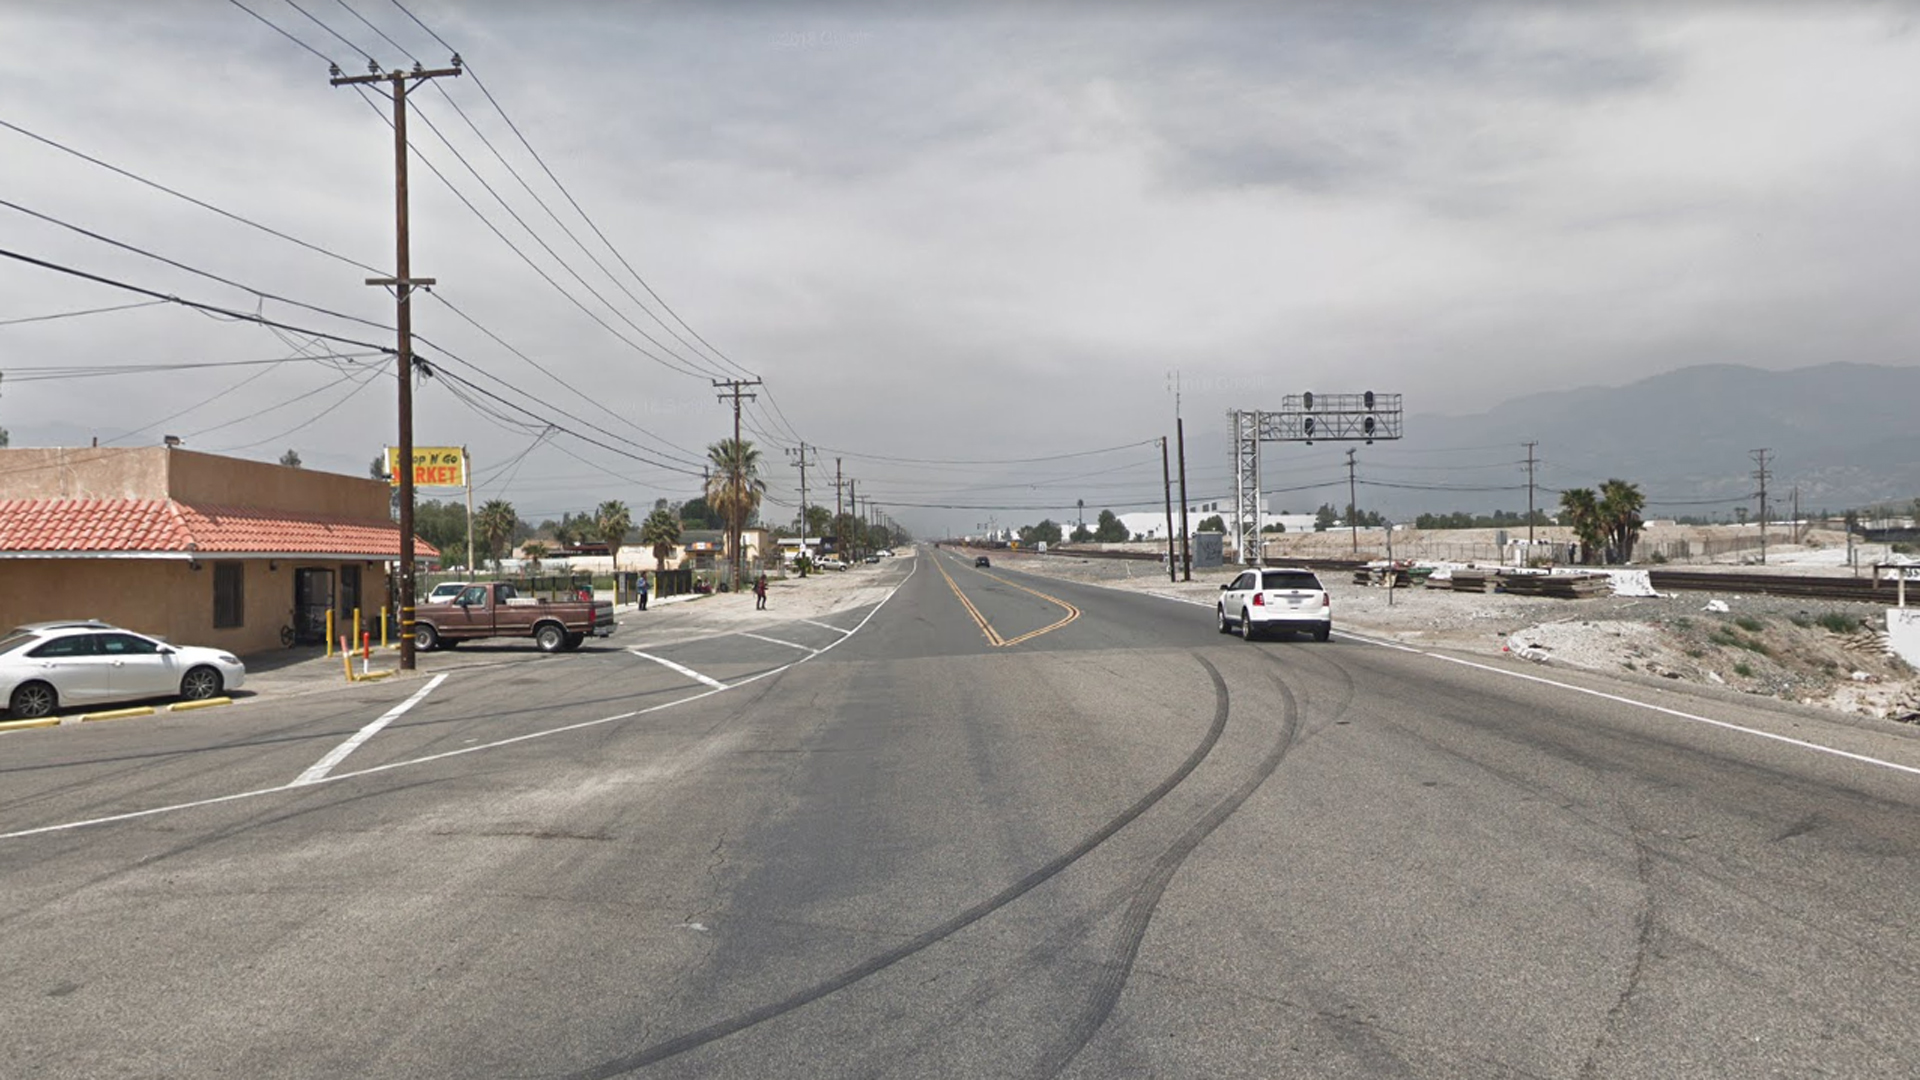 Cajon Boulevard, just north of Kern Street, as pictured in a Google Street View image in April of 2018.